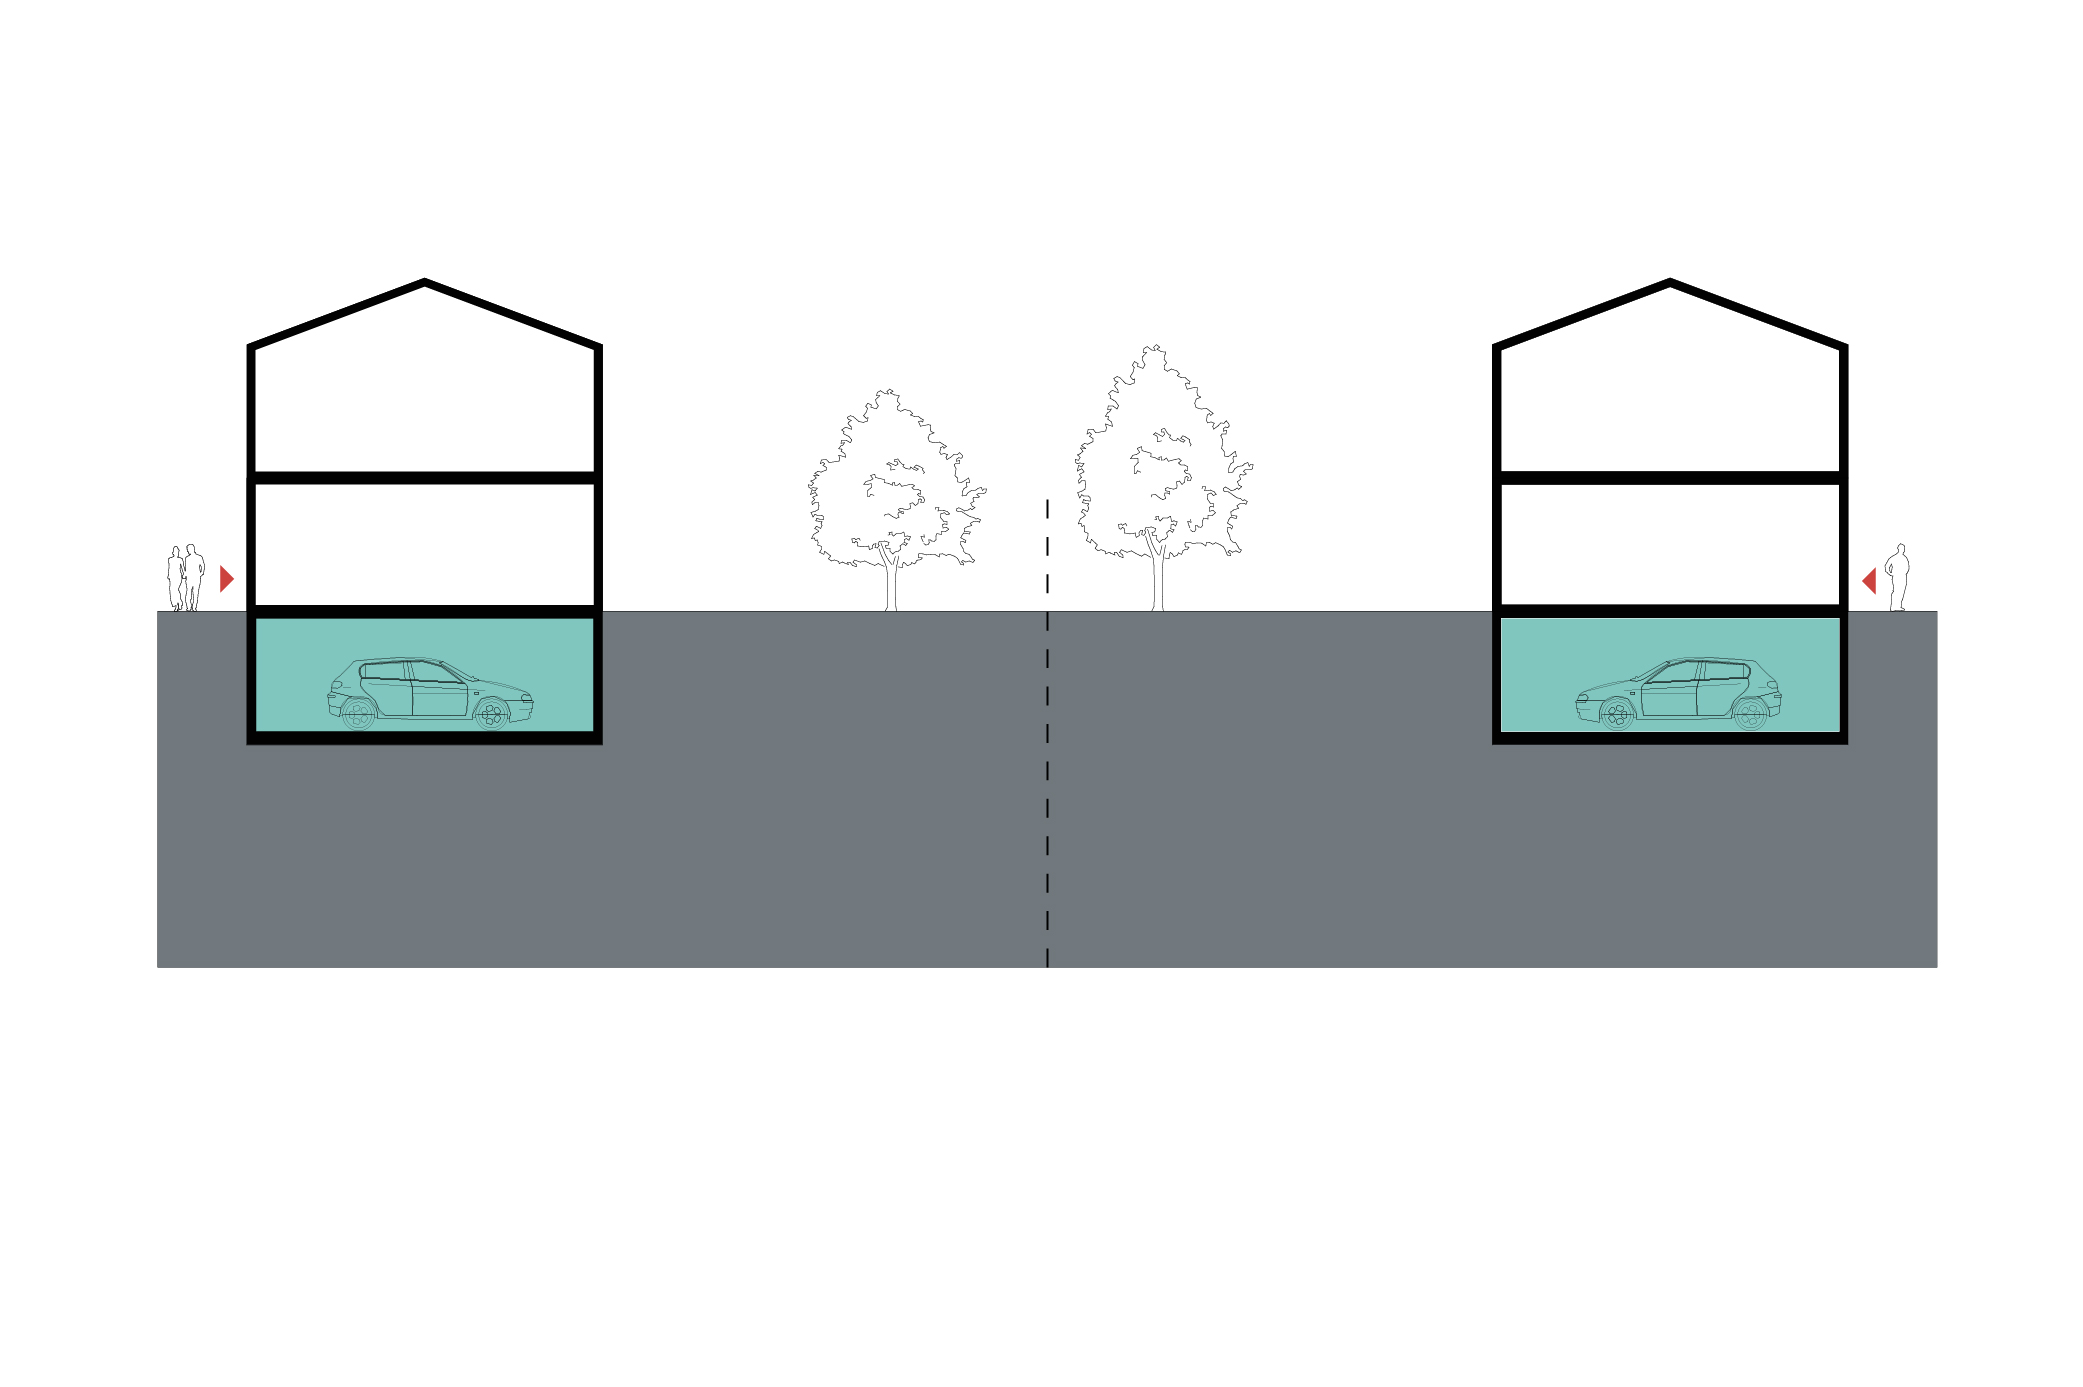 Design of basement car parking - Parking Grouped In Underground Basement Beneath The Building This Type Sometimes Uses The Natural Topography